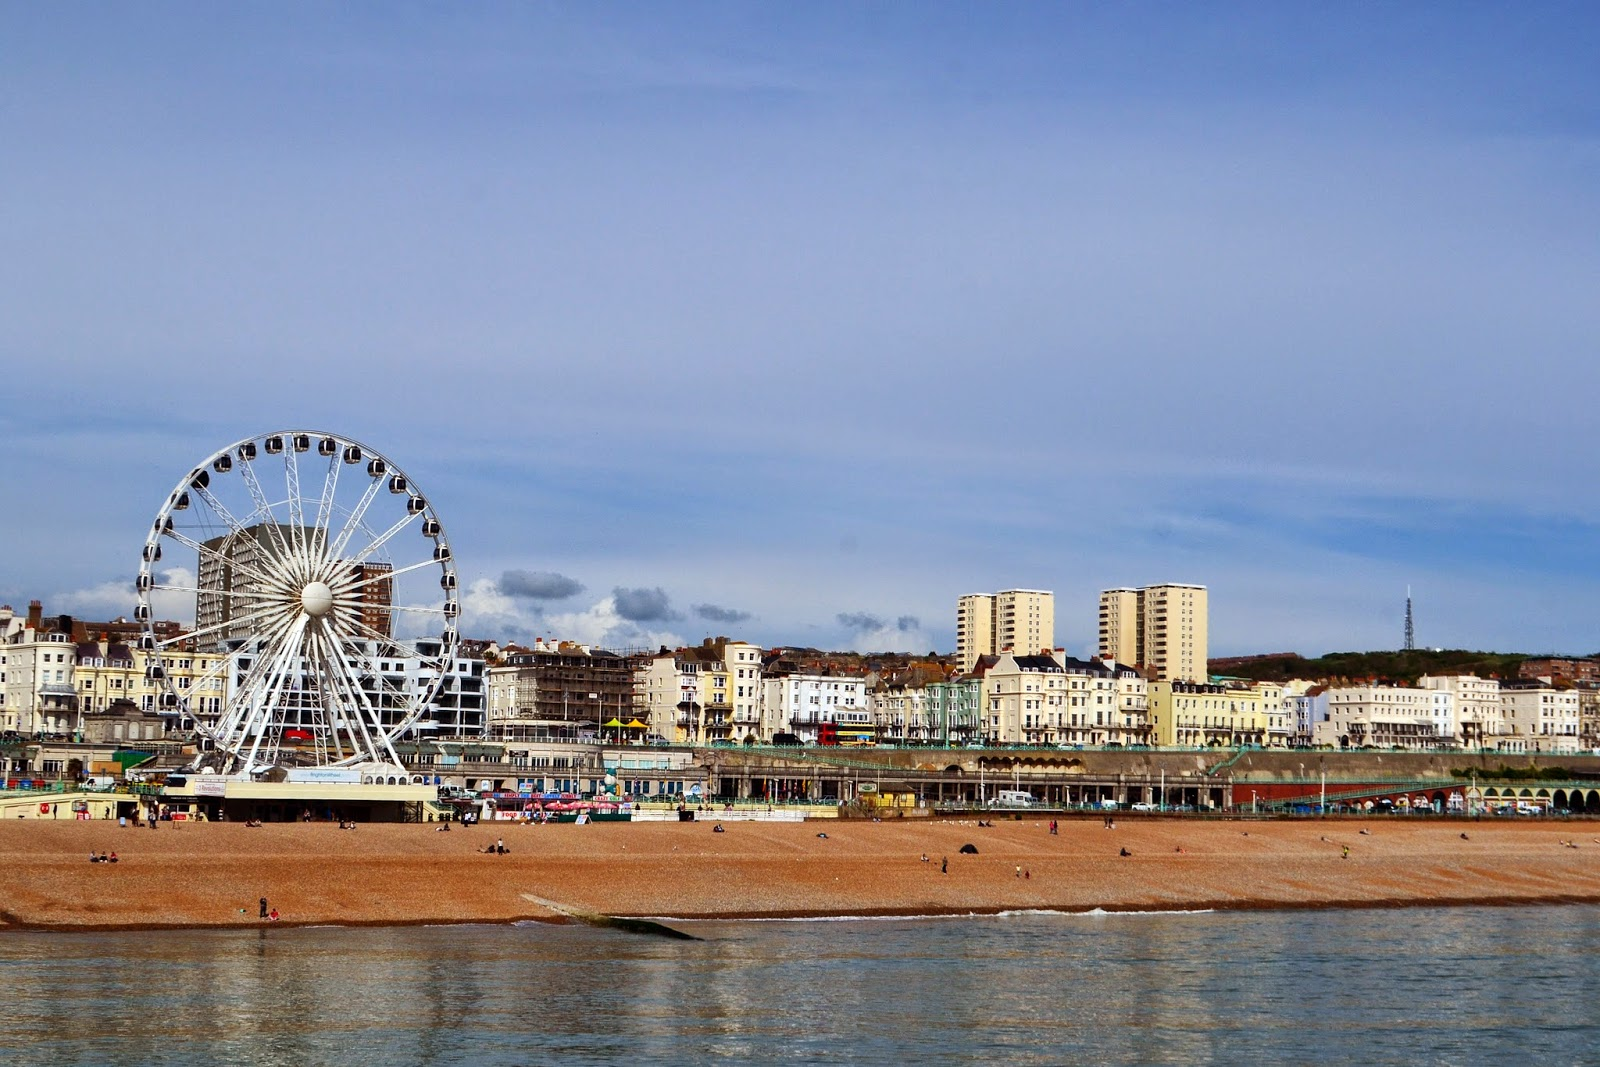 a view of brighton from the end of the pier. A big wheel, shops, and hotels can be seen on the shore